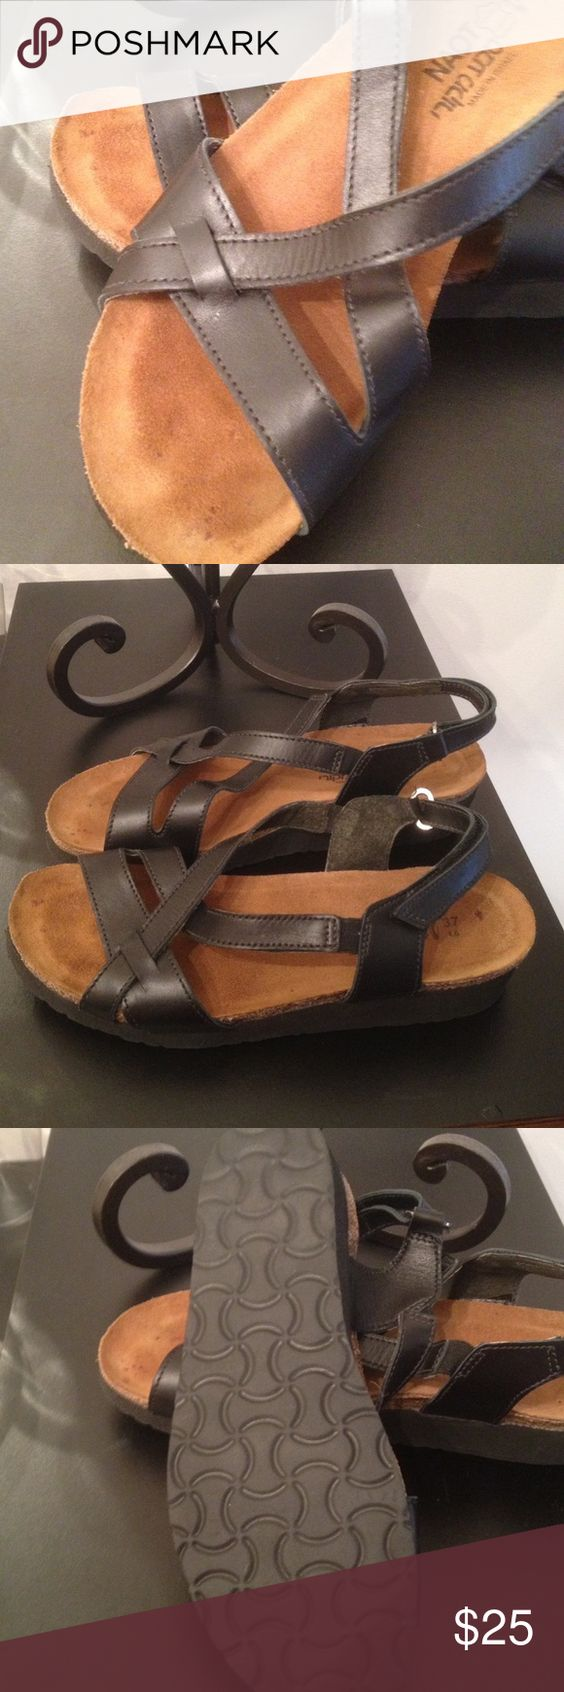 Black sandals size 7 - Naot Black Sandals Made In Israel Size 7 37 Black Strappy Sandals Naot Made